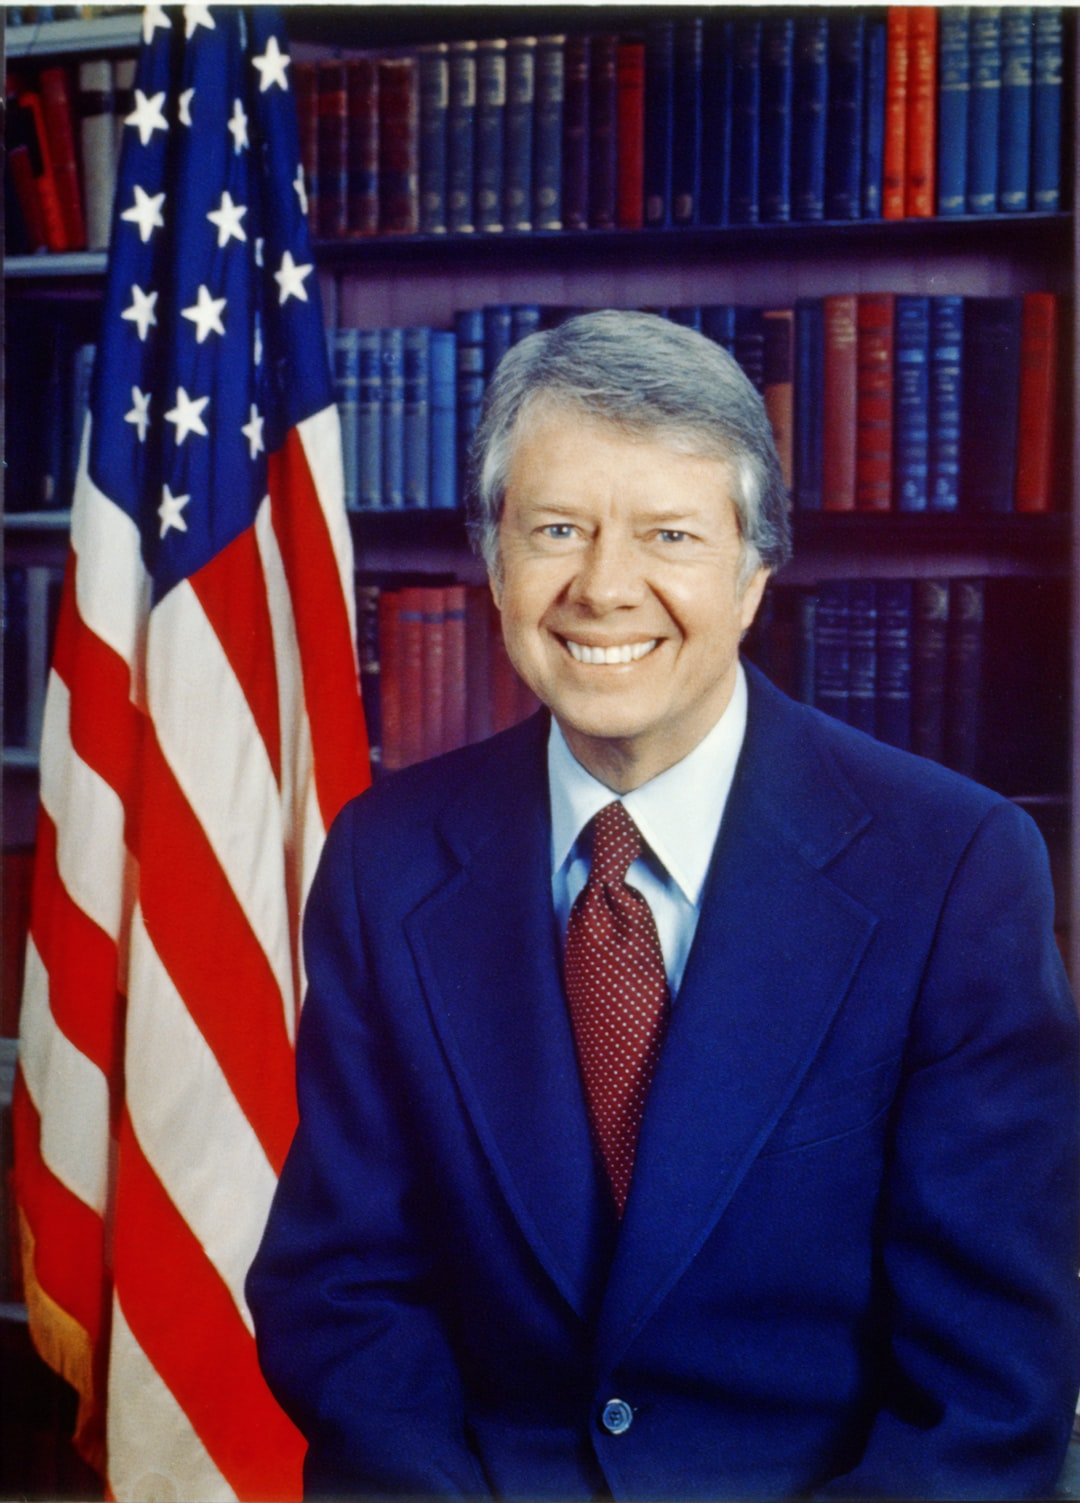 [Jimmy Carter, head-and-shoulders portrait, facing front, next to an American flag]. Photograph by photographer Karl Schumacher, 1977. From the Presidential File Collection. Library of Congress Prints & Photographs Division.  https://www.loc.gov/item/96522672/